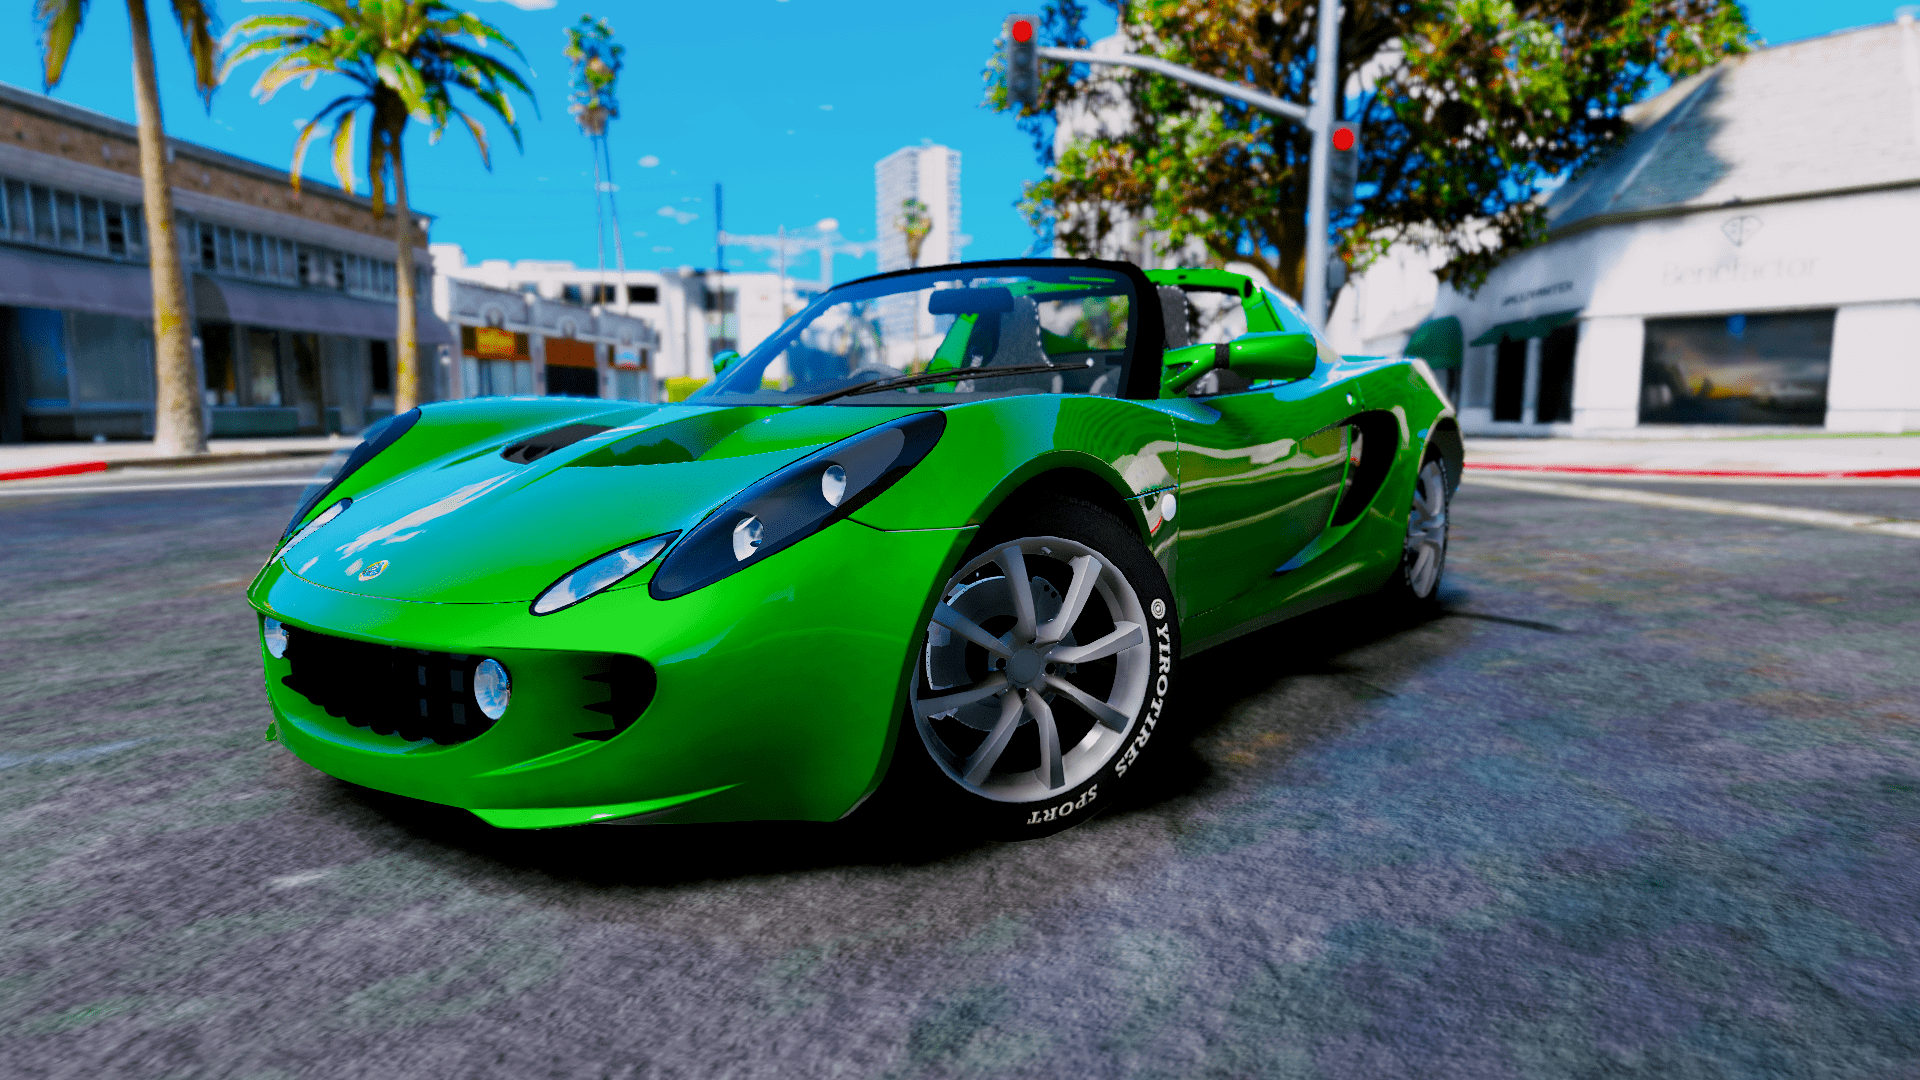 lotus elise 111s 2005 add on replace tuning template gta5. Black Bedroom Furniture Sets. Home Design Ideas